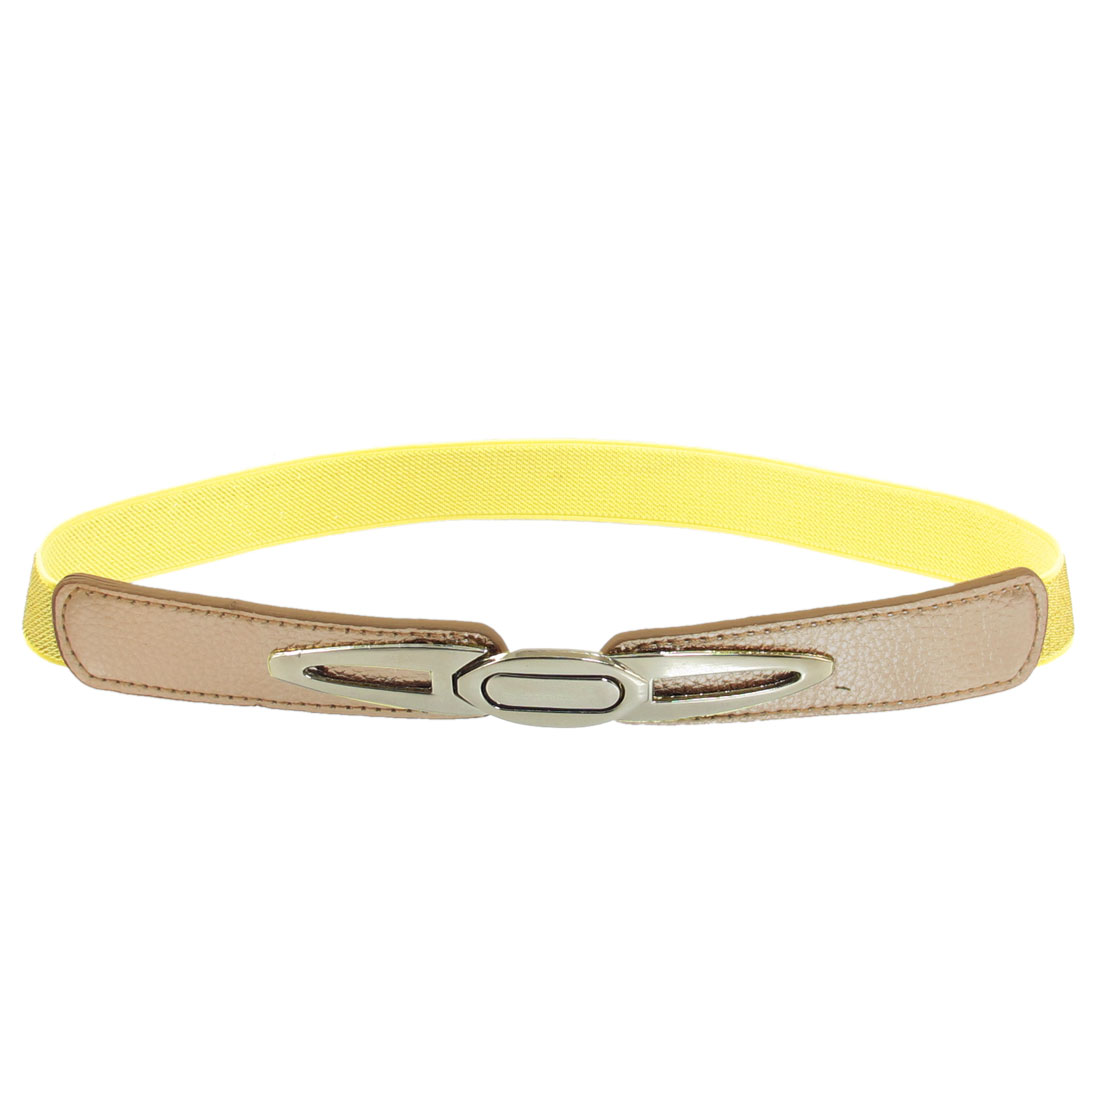 Gold Tone Metal Interlocking Buckle Elastic Slim Cinch Waist Belt for Lady